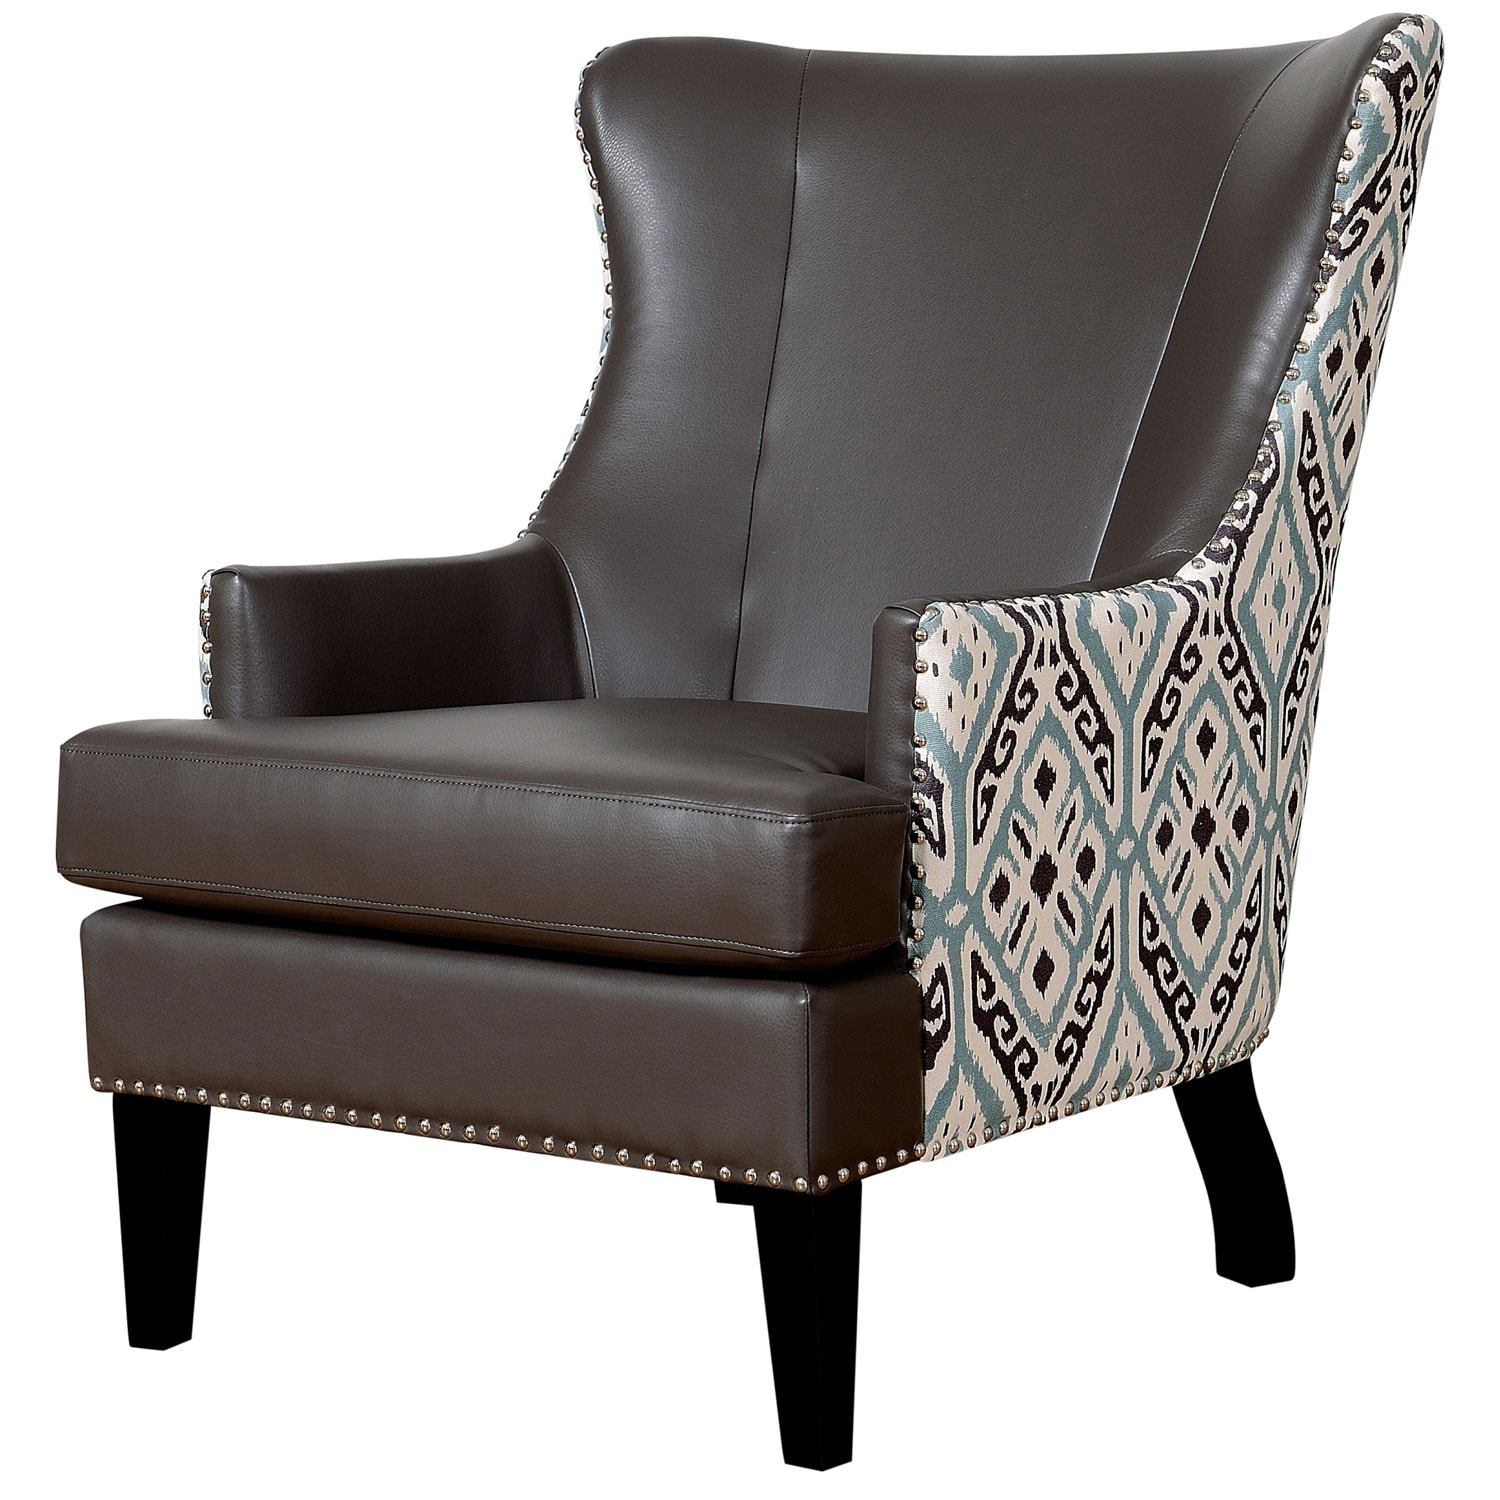 Soho Leather Ikat Wing Chair Overstock™ Shopping Great